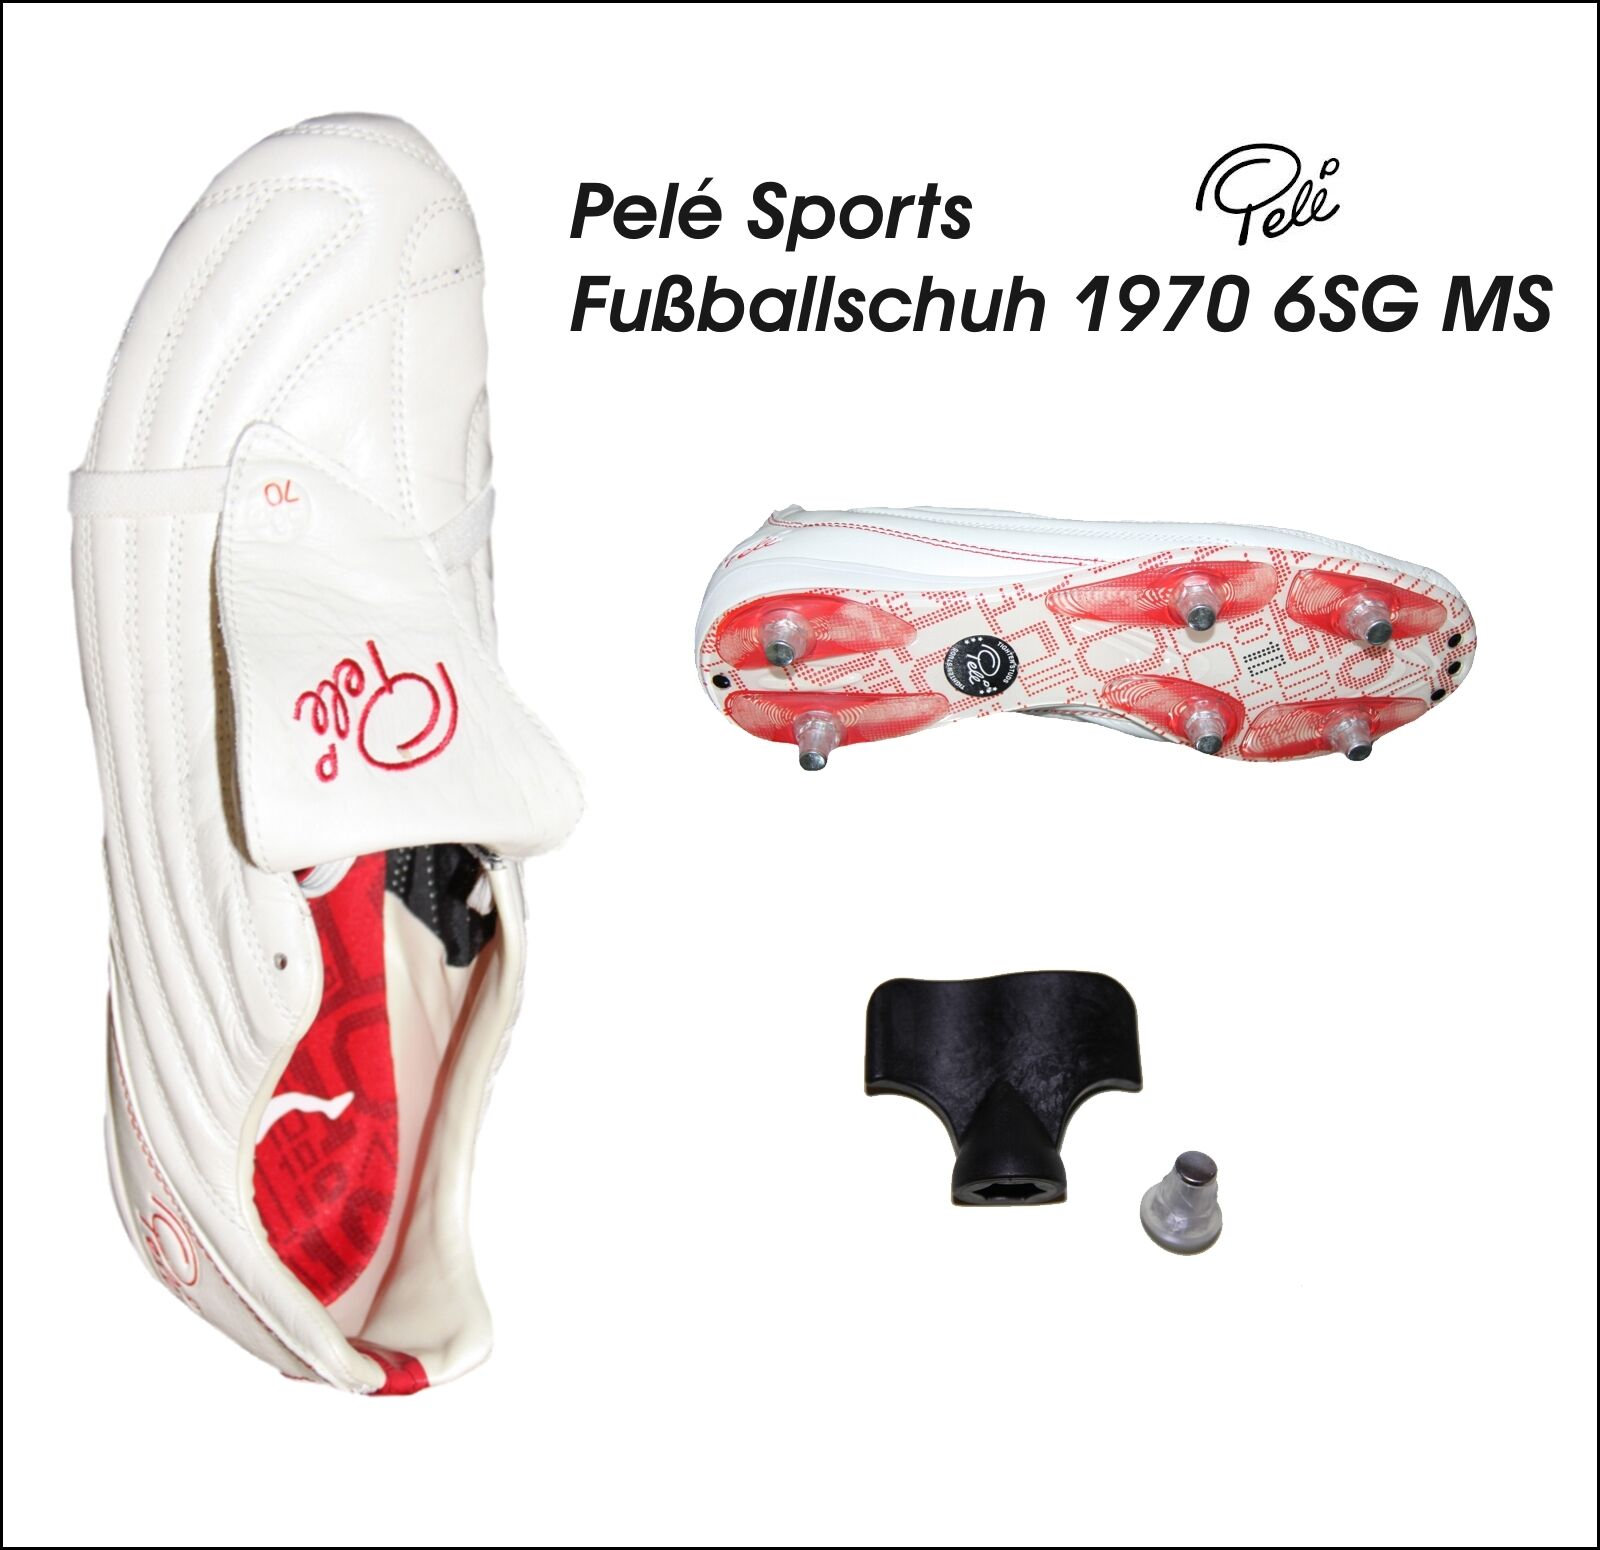 Pelé Sports - Men's Football Boot 1970 6SG MS Trainers Kangaroo Leather White